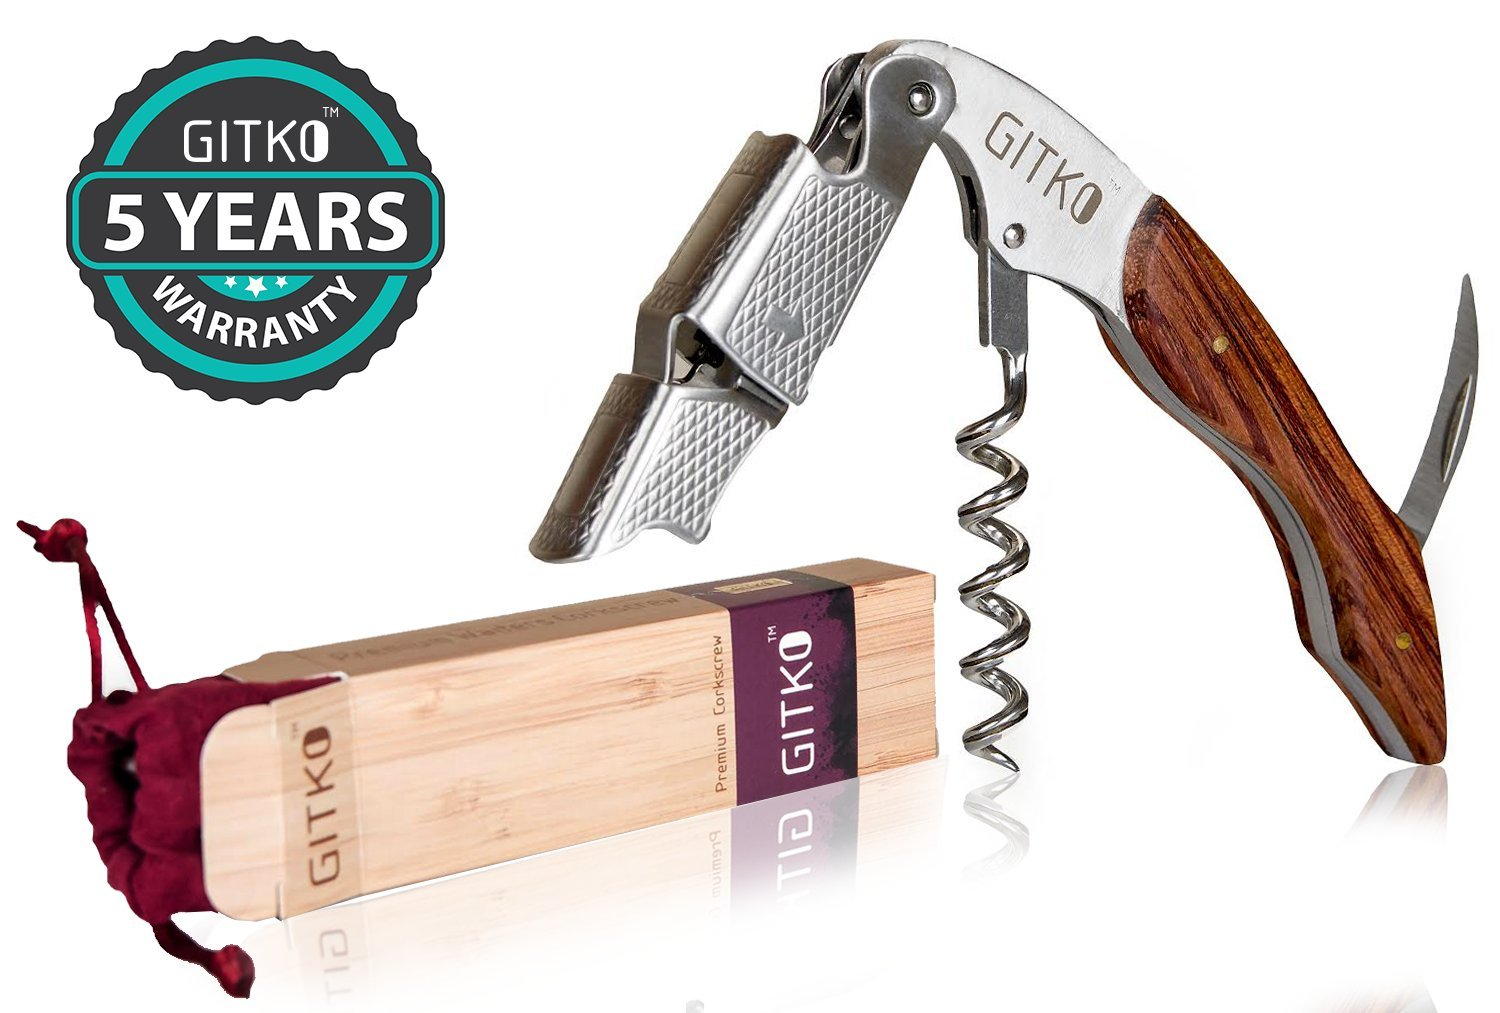 Waiters Corkscrew By Gitko -With a Comfortable Rosewood handle – Wine And Beer Bottle Opener For Bartenders, Waiters, –With A Stainless Steel Wine Key Foil Cutter - With a Nice Pouch Included, 3 Pack